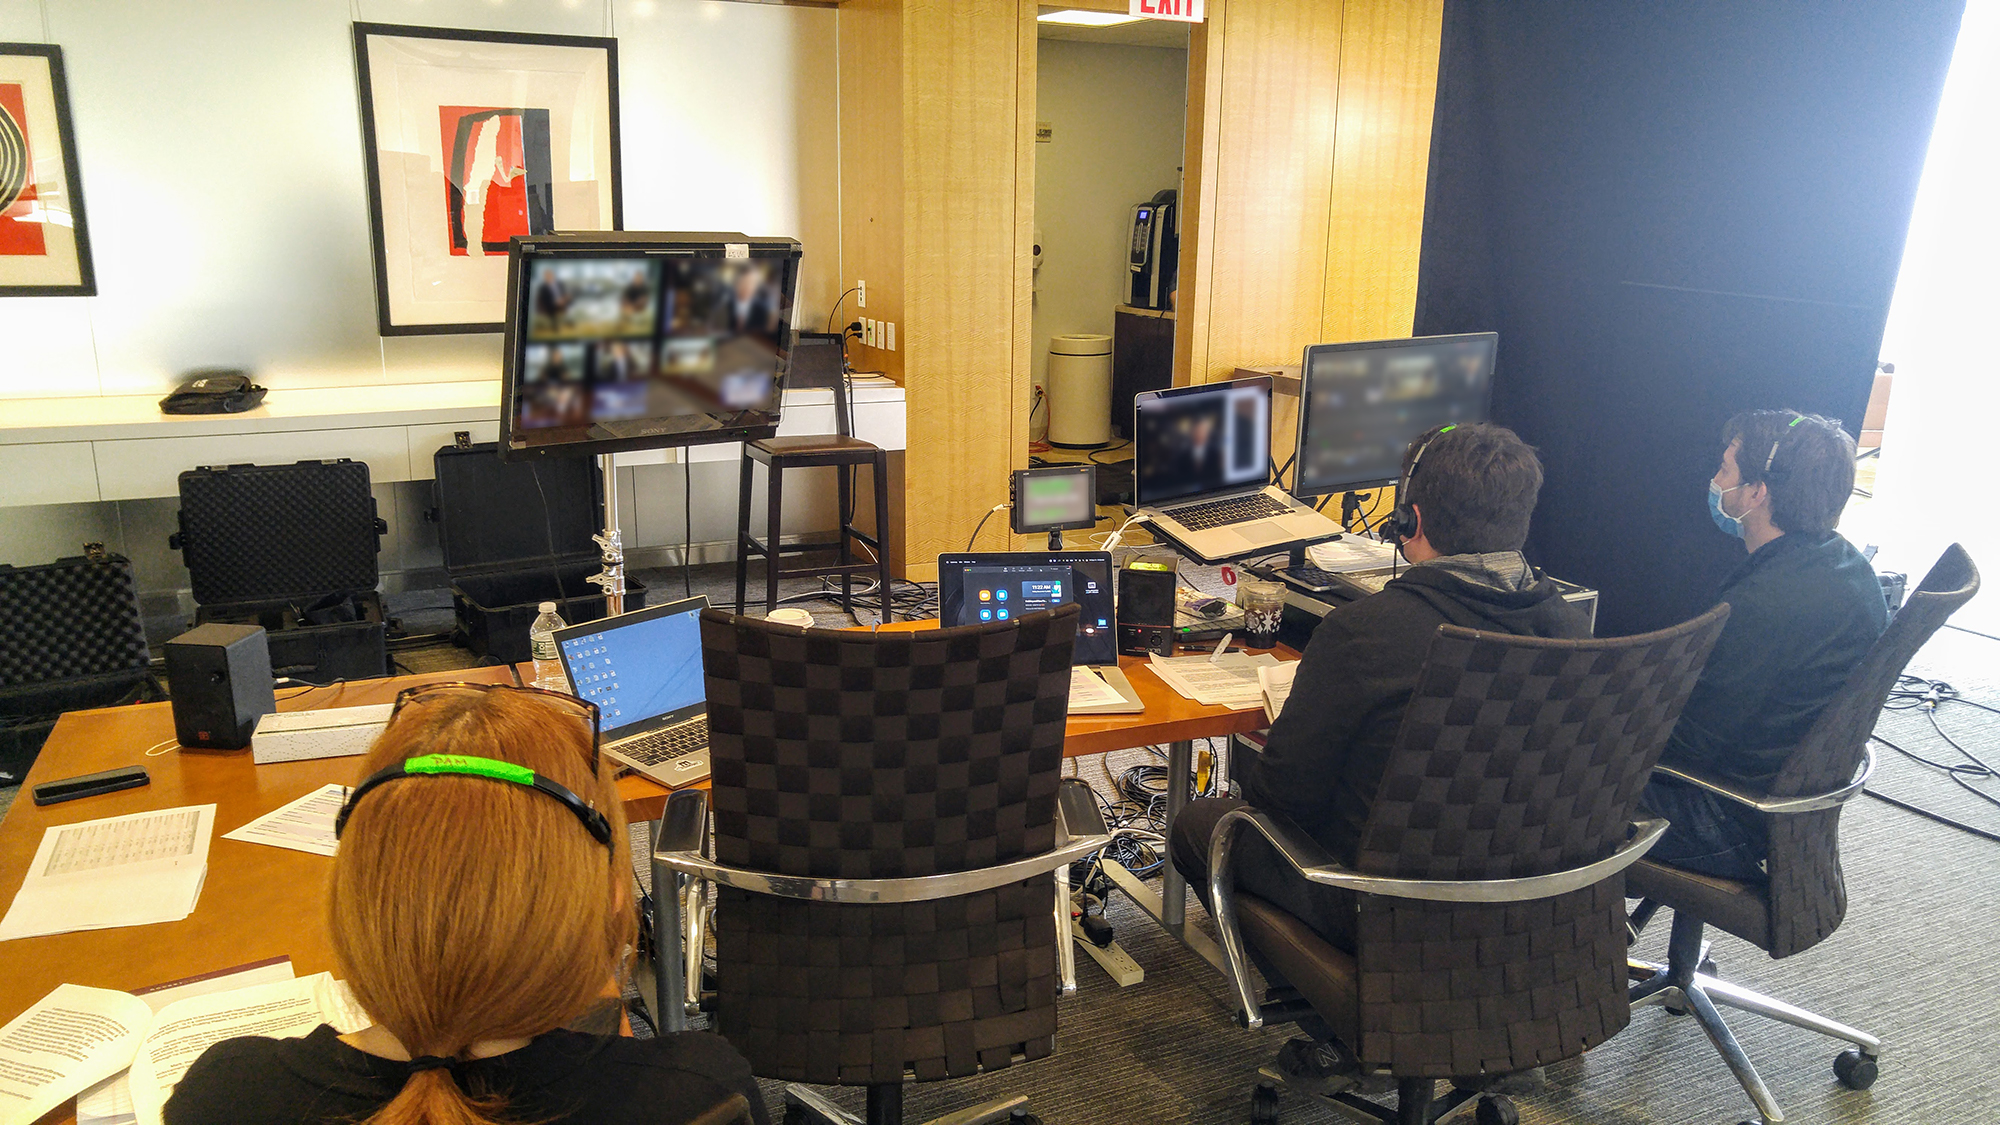 Though the meeting featured 350+ participants in various locations, A/V was run remotely from NYC.